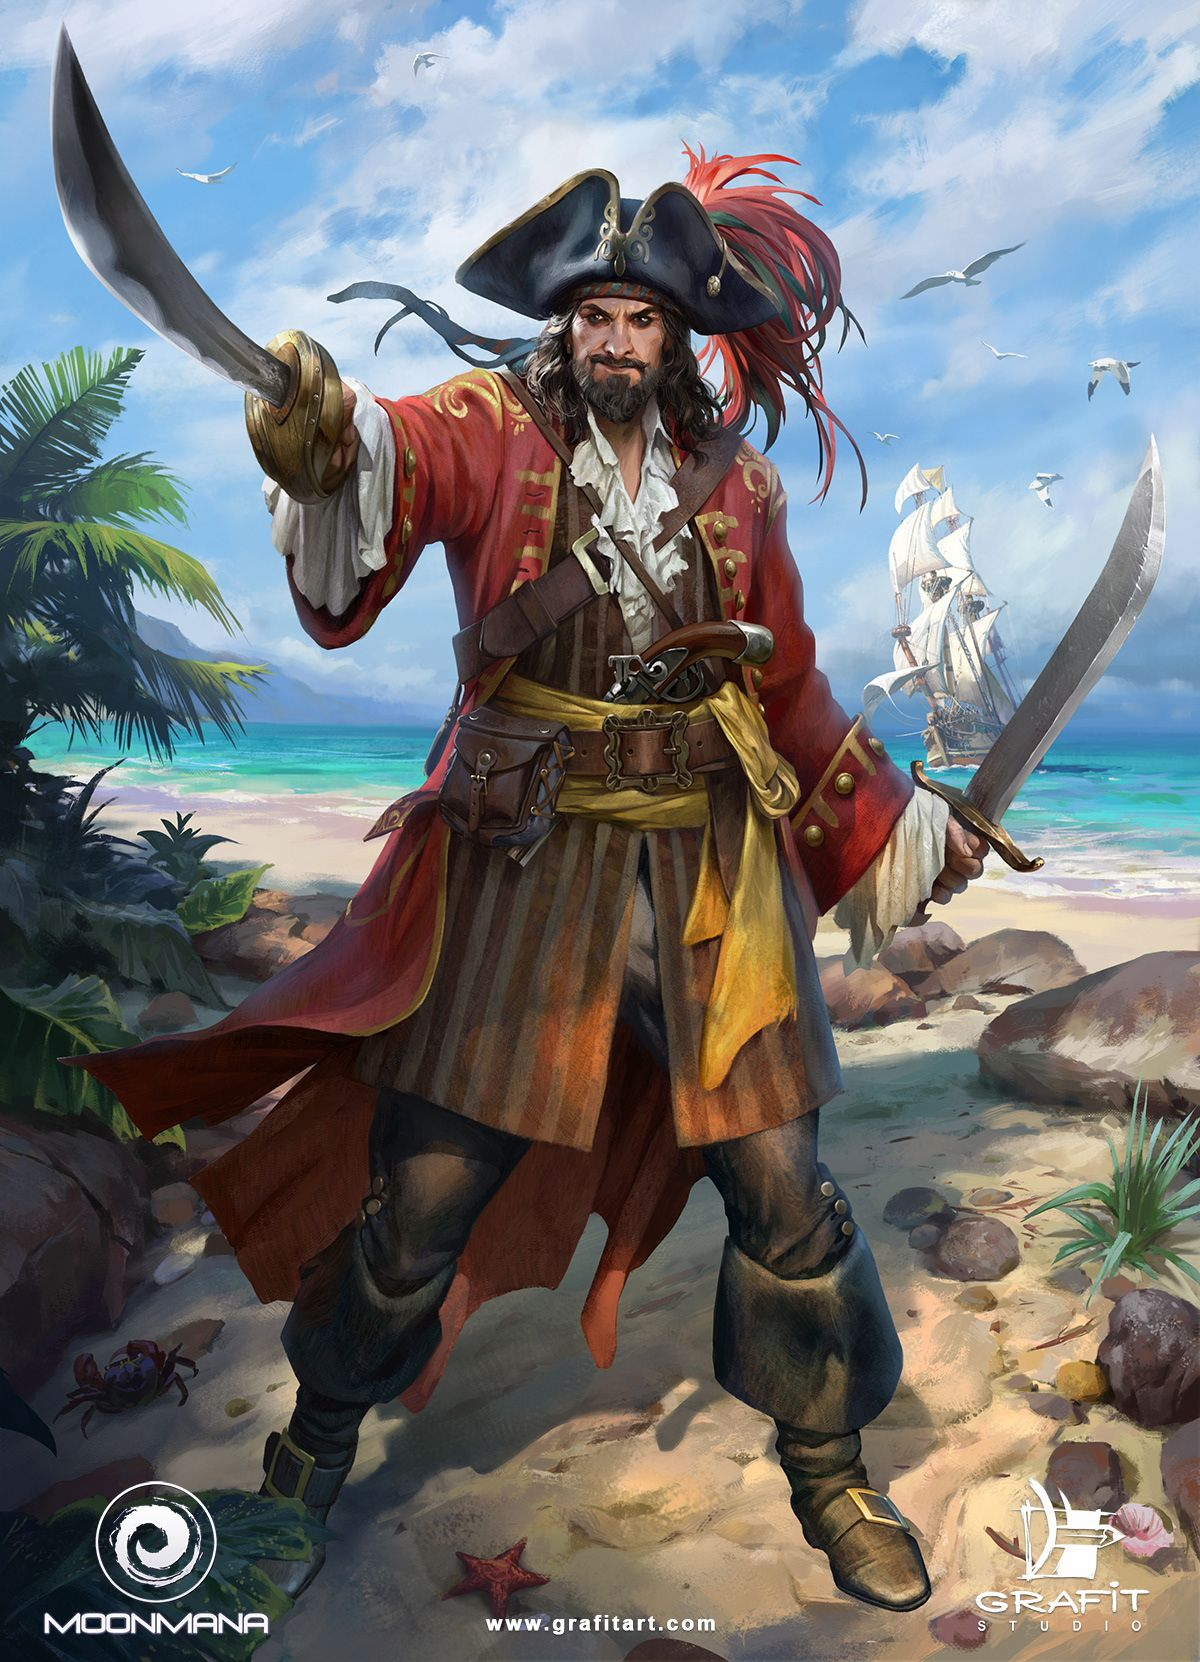 Ultimate Pirates on Behance | Pirate art, Pirates, Pirate boats